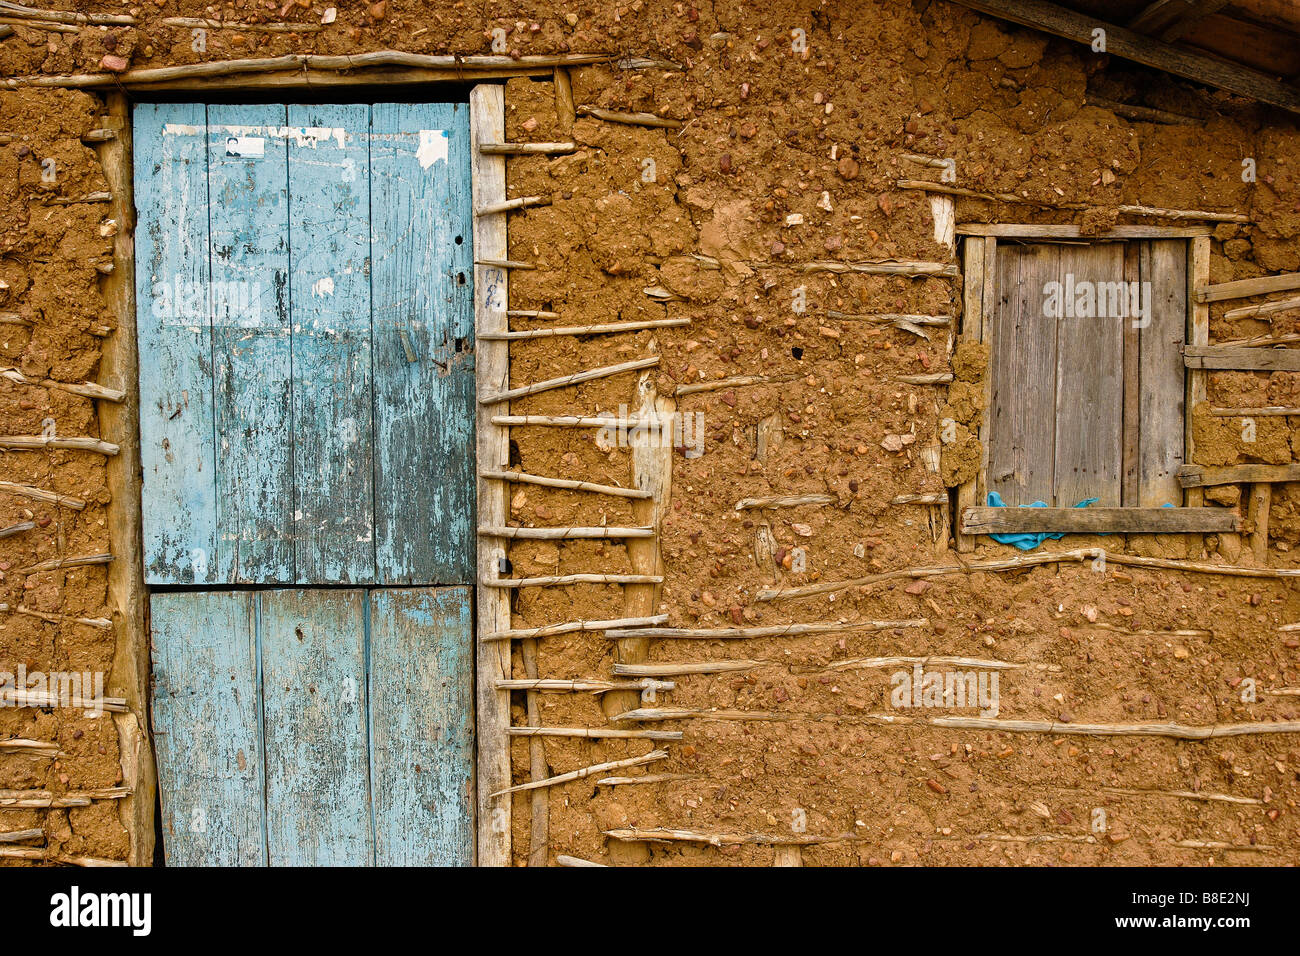 Wattle and daub house casa de pau a pique Rural area of Cabrobó city Pernambuco State countryside Brazil - Stock Image